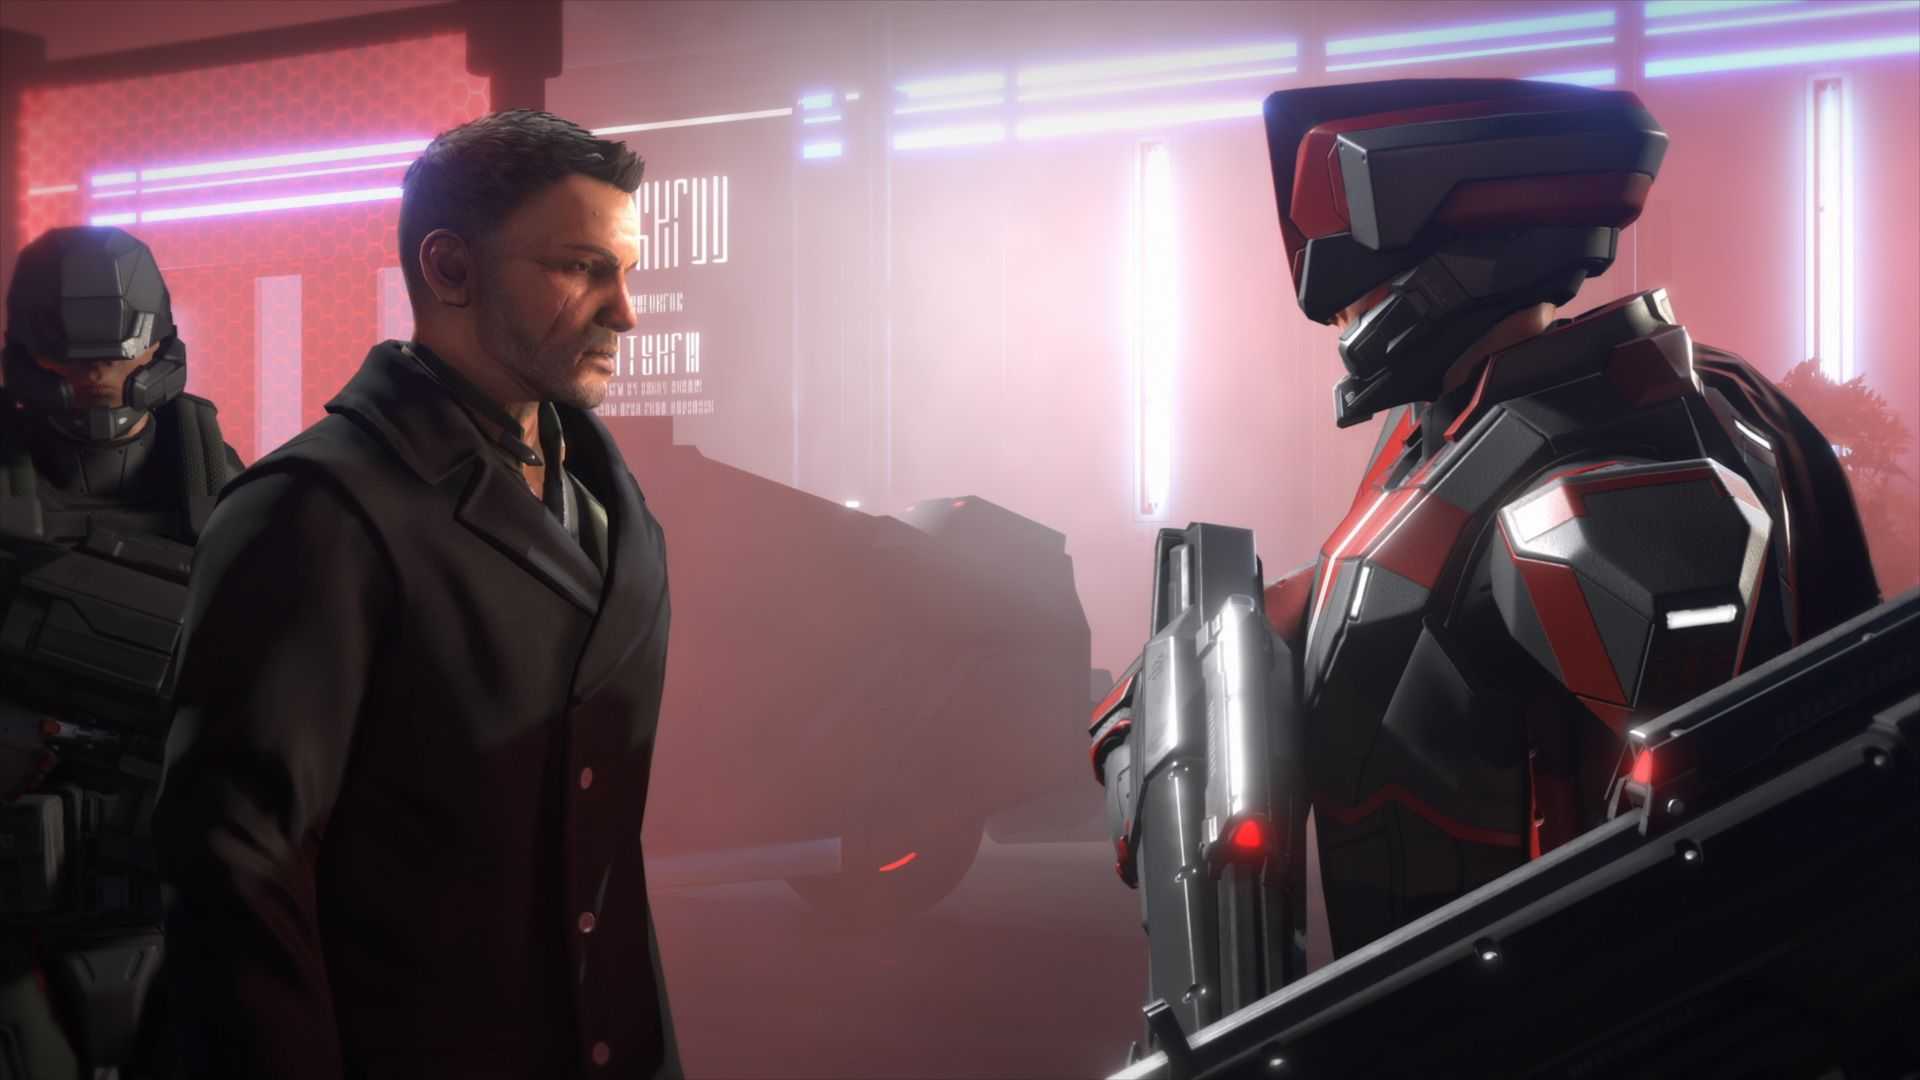 FR - New Update Deployed for XCOM 2 on PS4, Xbox On